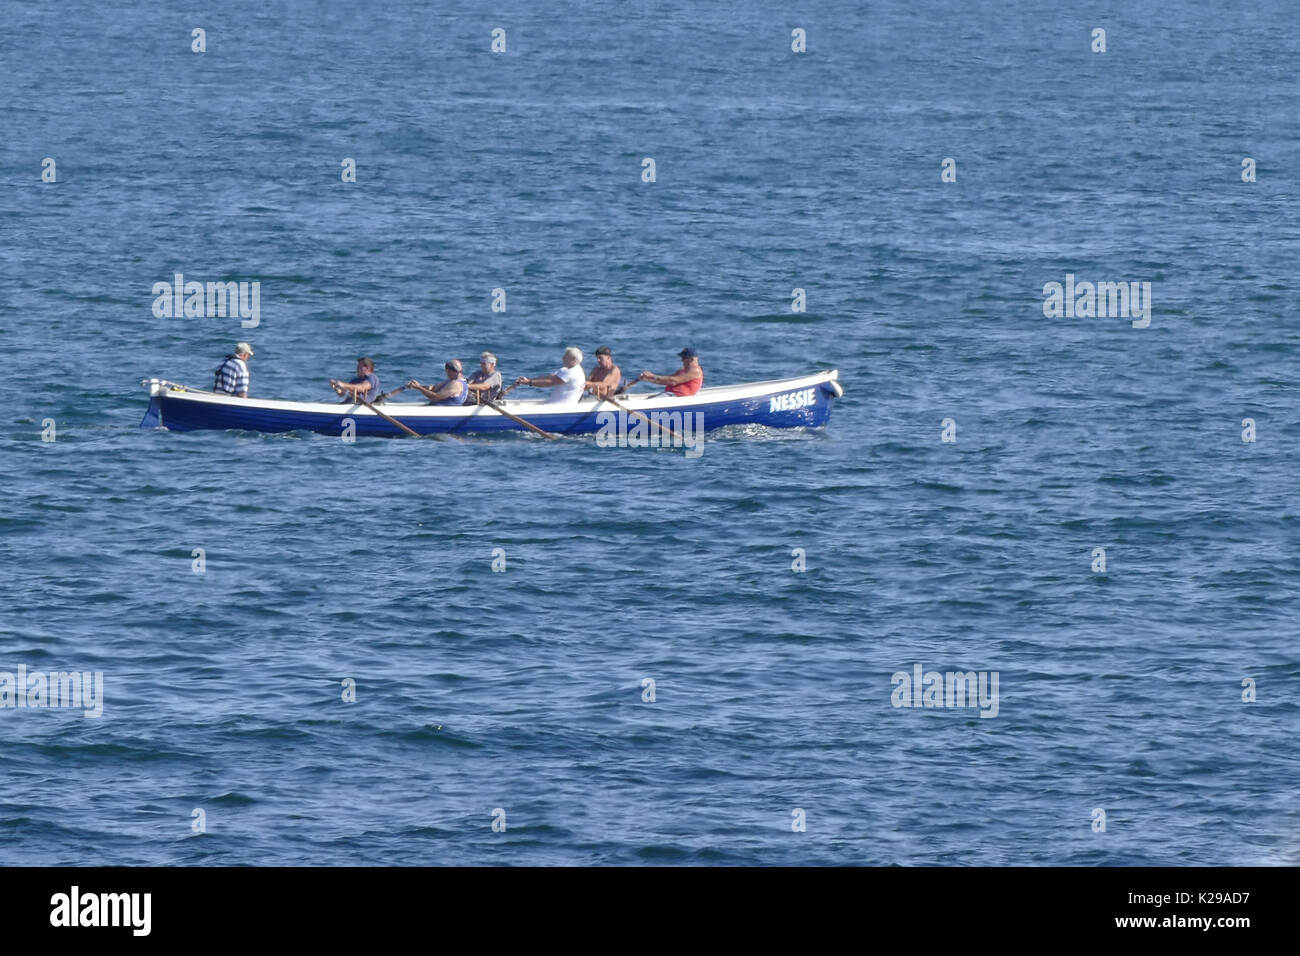 rowing a gig - Stock Image